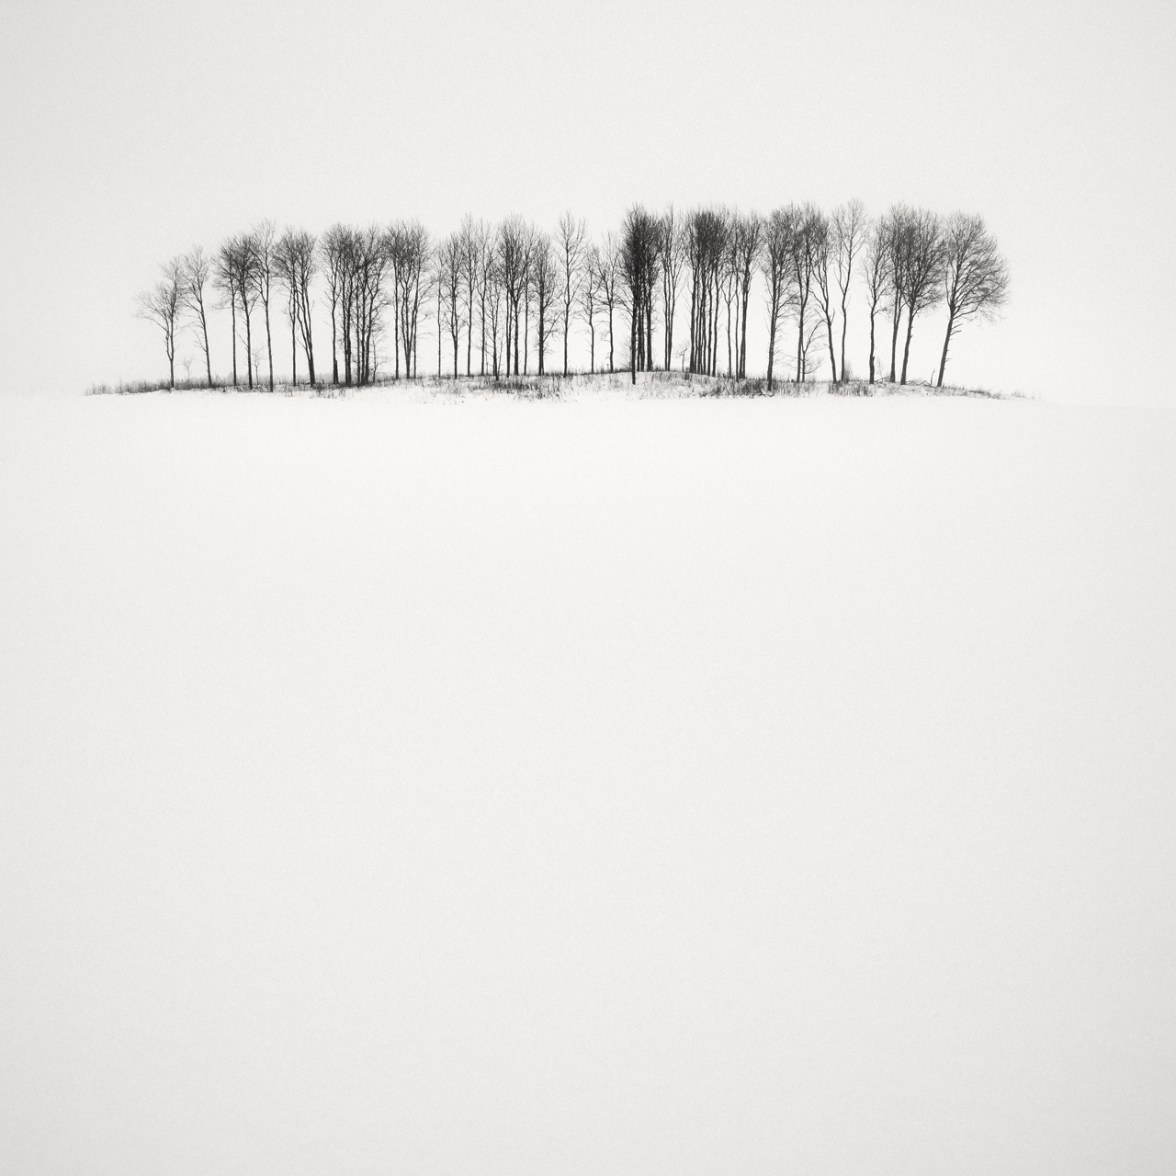 Birches In Snow,2013, © Frang Dushaj